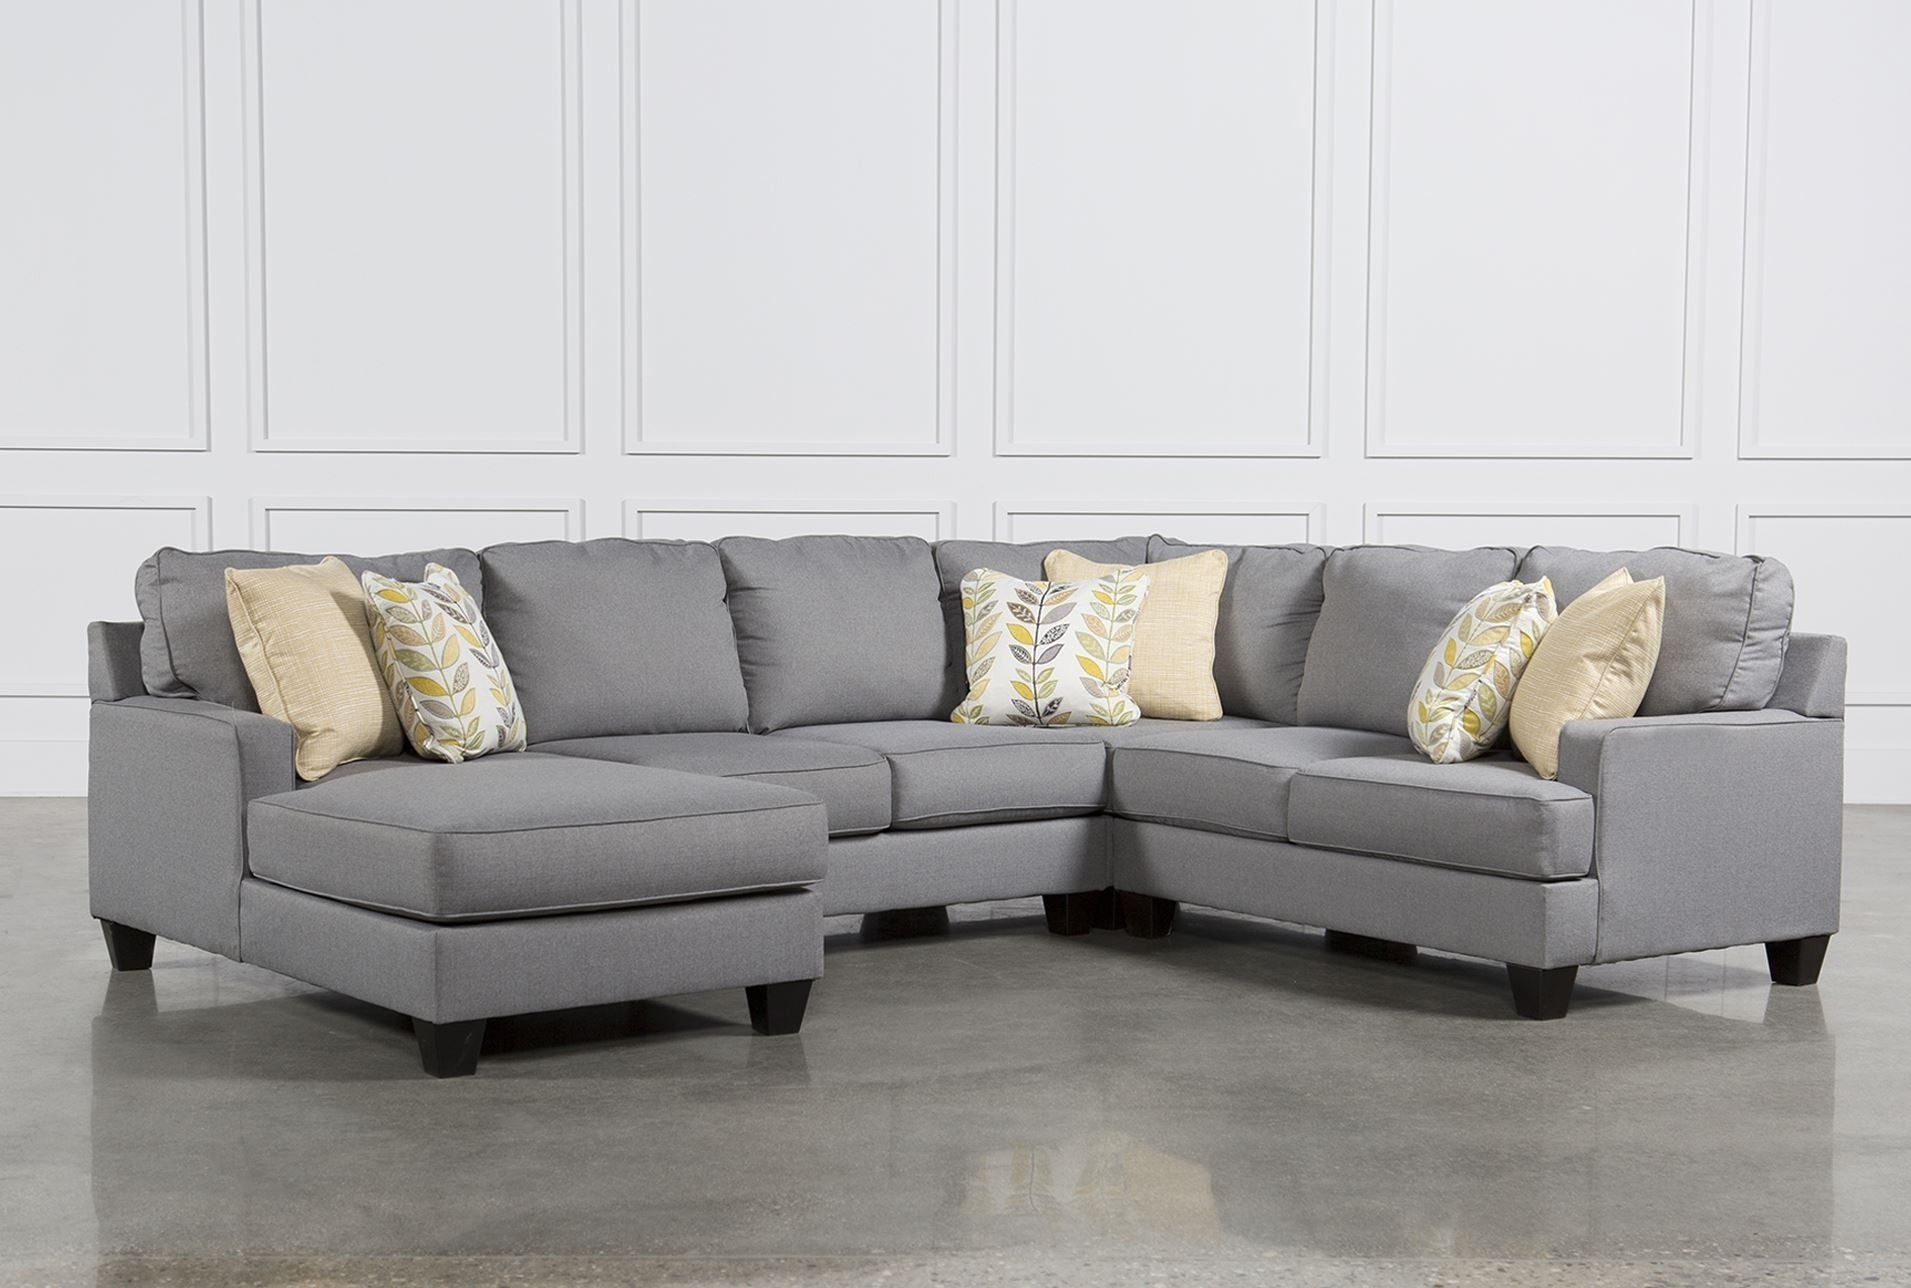 Living Spaces Sectional Sofas - Implantologiabogota.co throughout Delano 2 Piece Sectionals With Laf Oversized Chaise (Image 24 of 30)